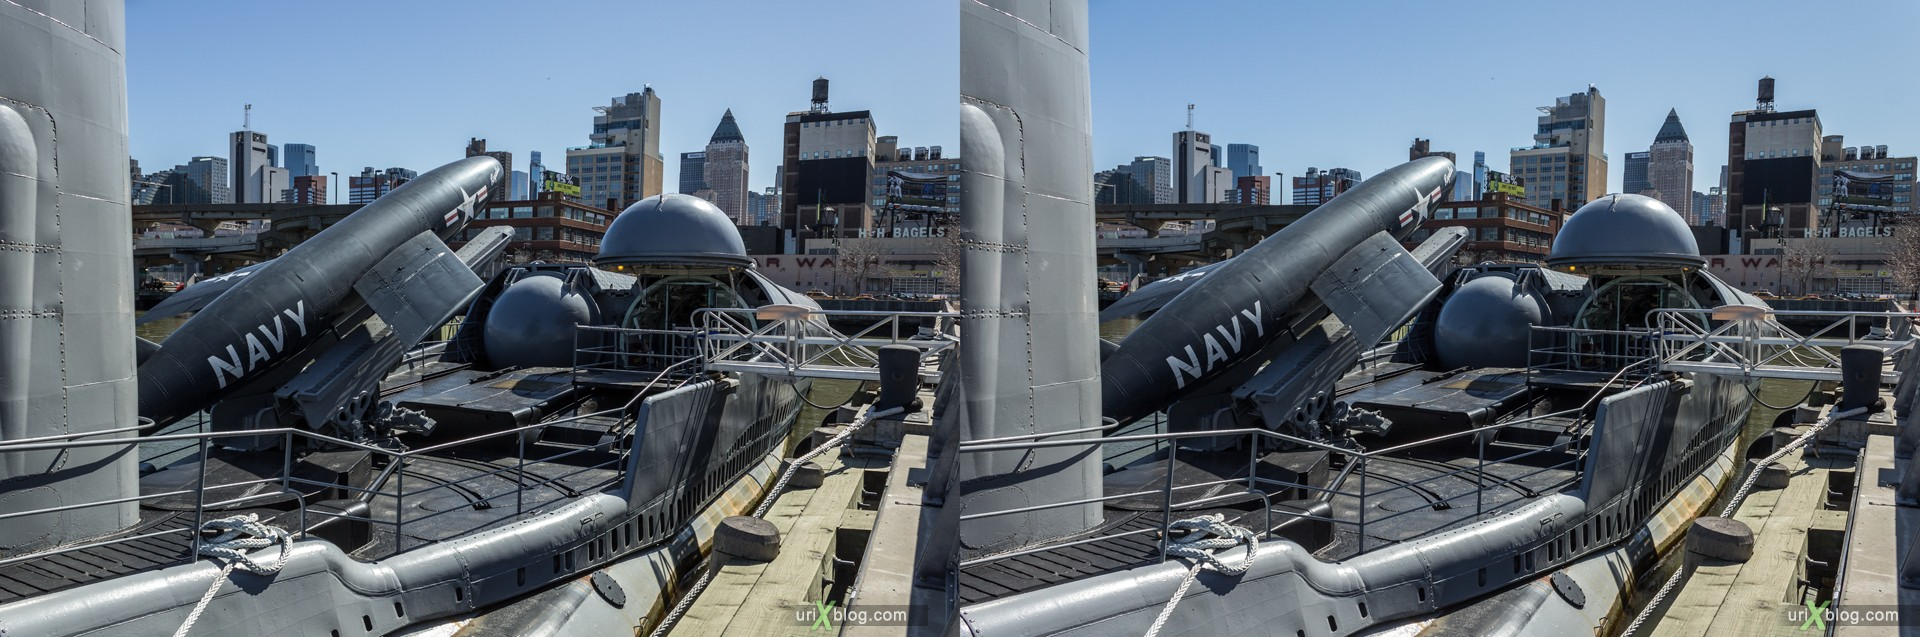 2013, USA, NYC, New York, aircraft carrier Intrepid museum, Growler submarine, sea, air, space, ship, submarine, aircraft, airplane, helicopter, military, 3D, stereo pair, cross-eyed, crossview, cross view stereo pair, stereoscopic